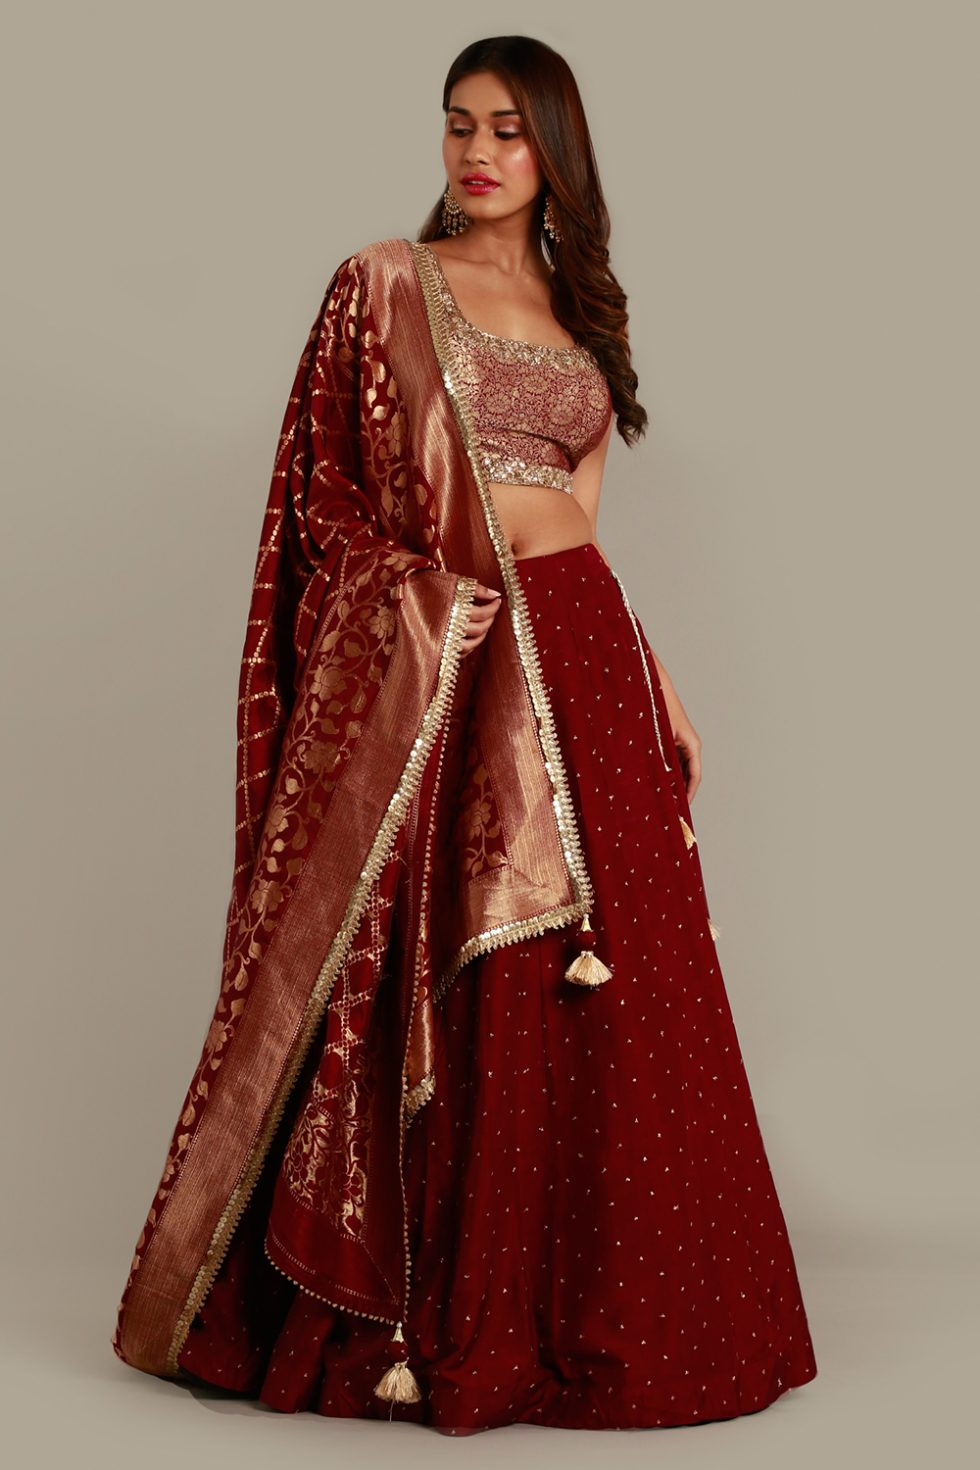 Deep red maroon lehenga set with gold butis, Banarasi dupatta and brocade blouse with gold embroidered neckline